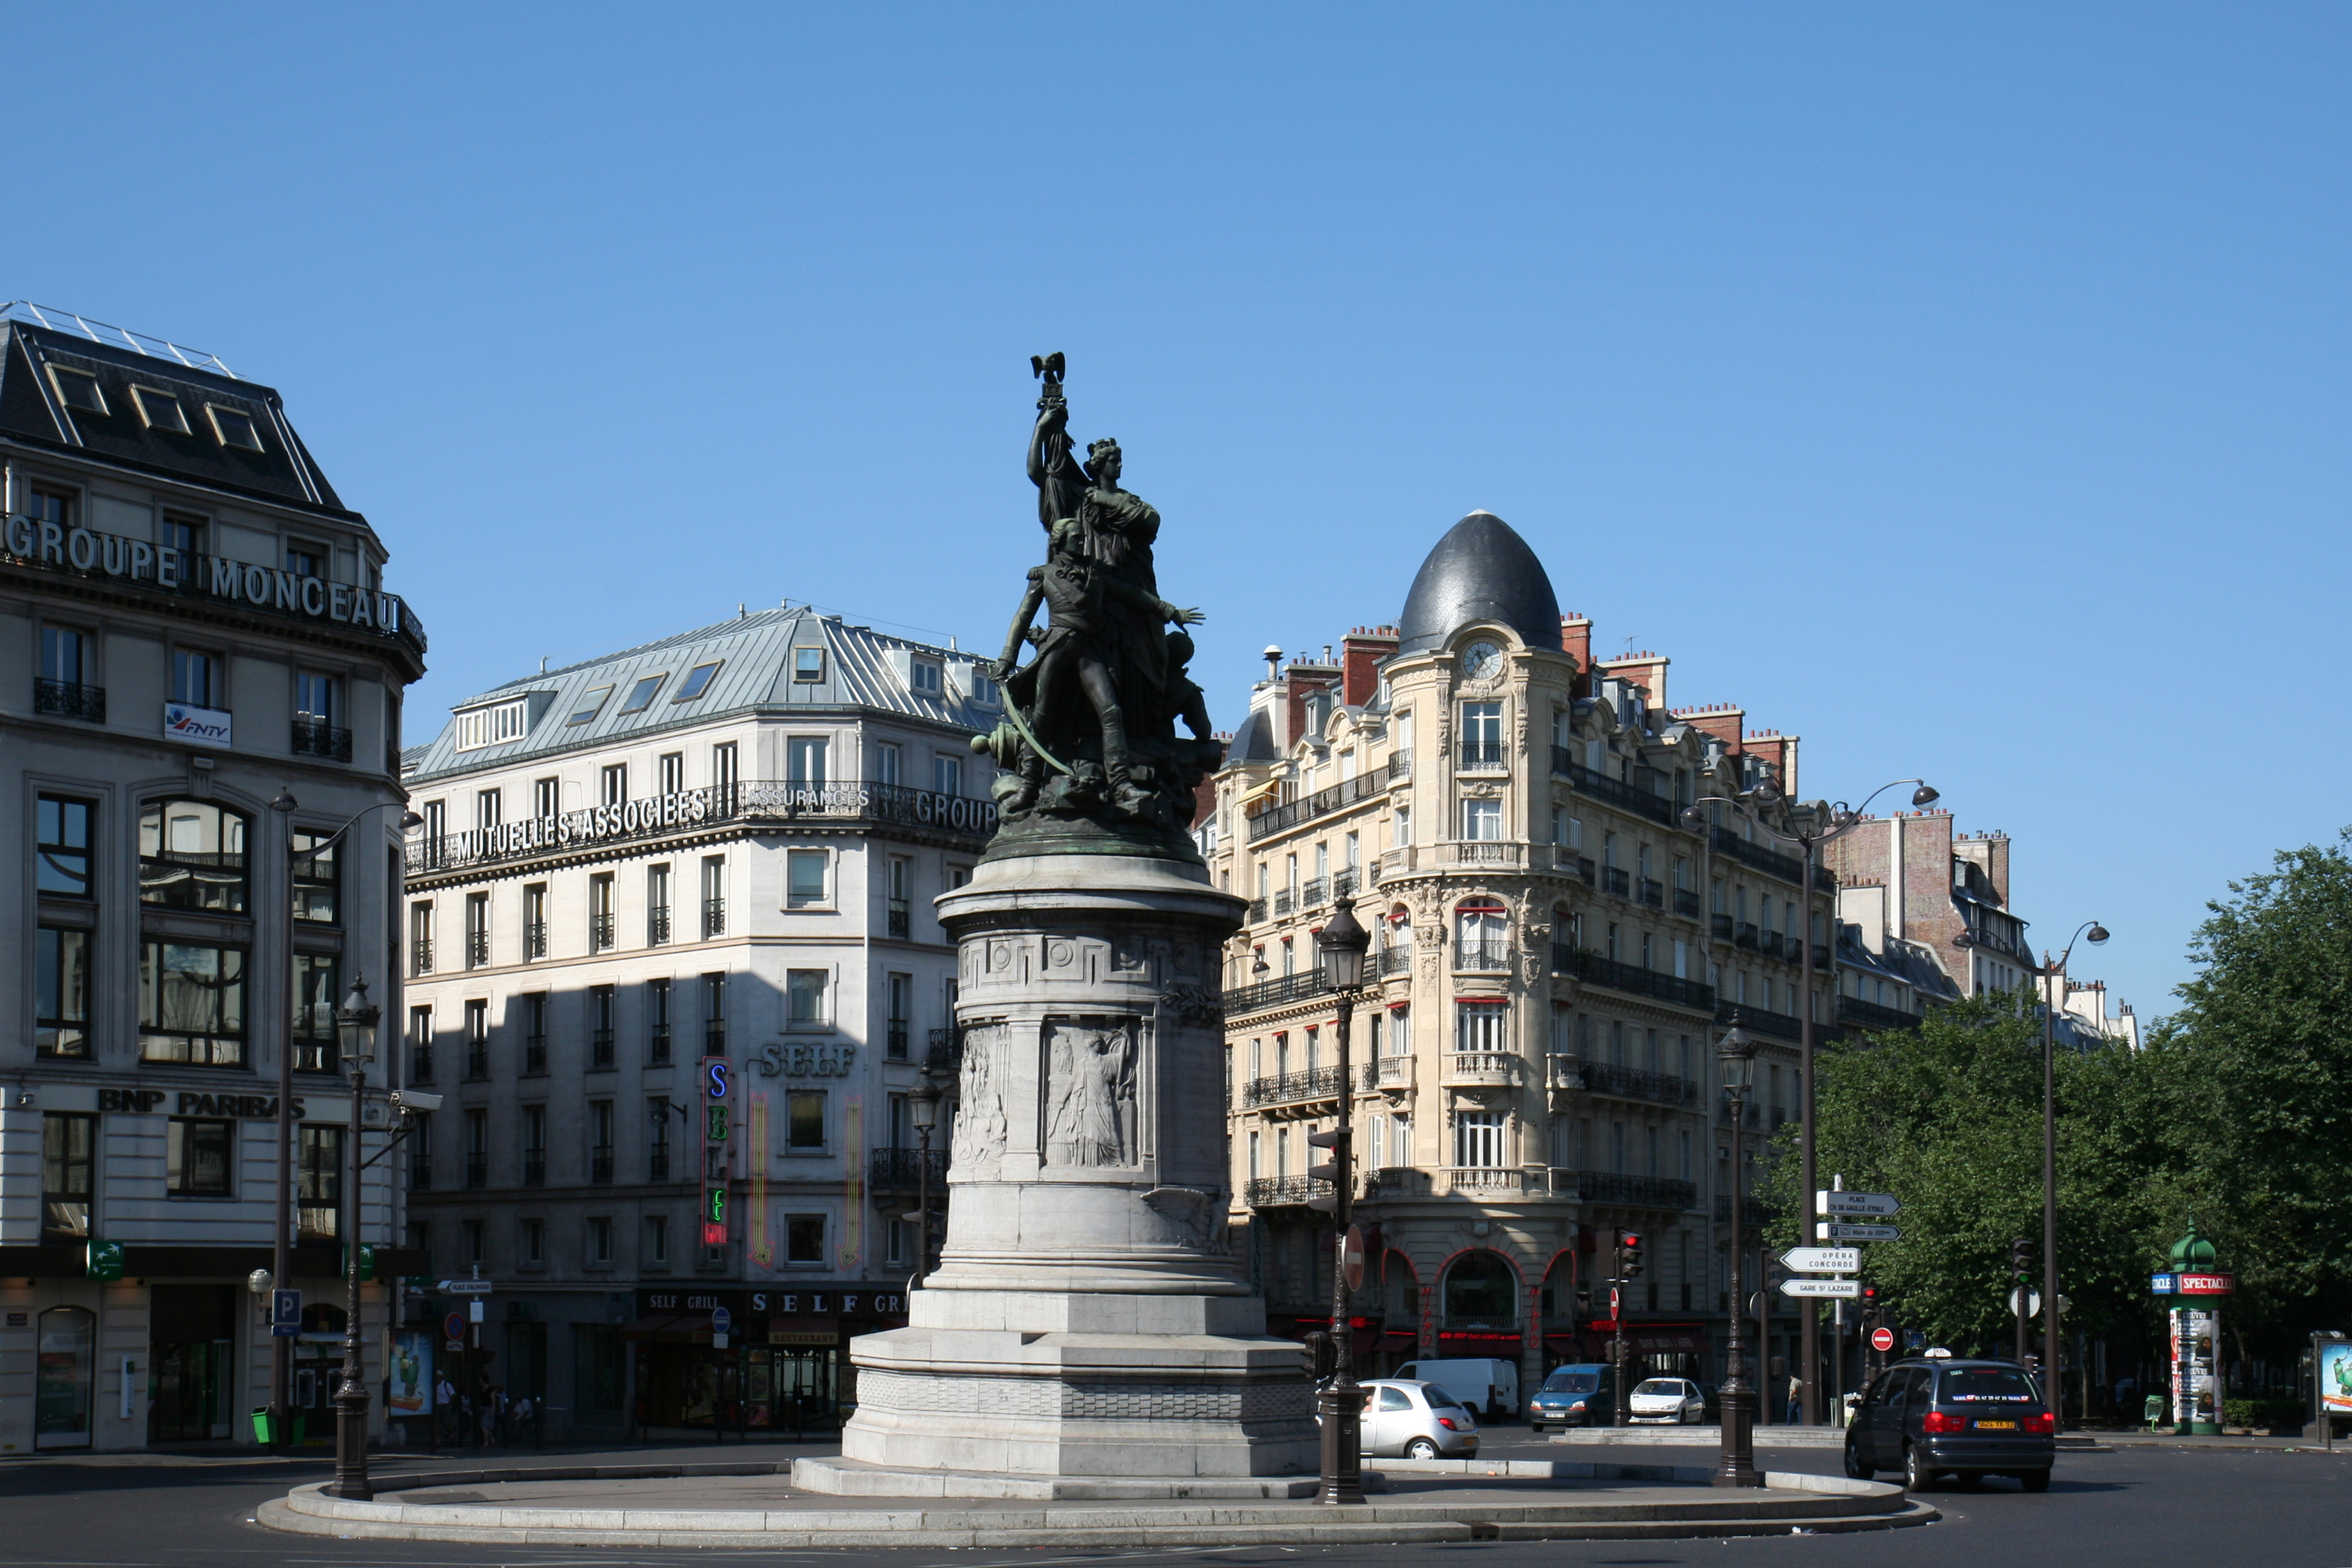 48/QUARTIER/Place_de_Clichy_and_Monument_of_Marechal_Moncey_Paris_15_July_2006.jpg